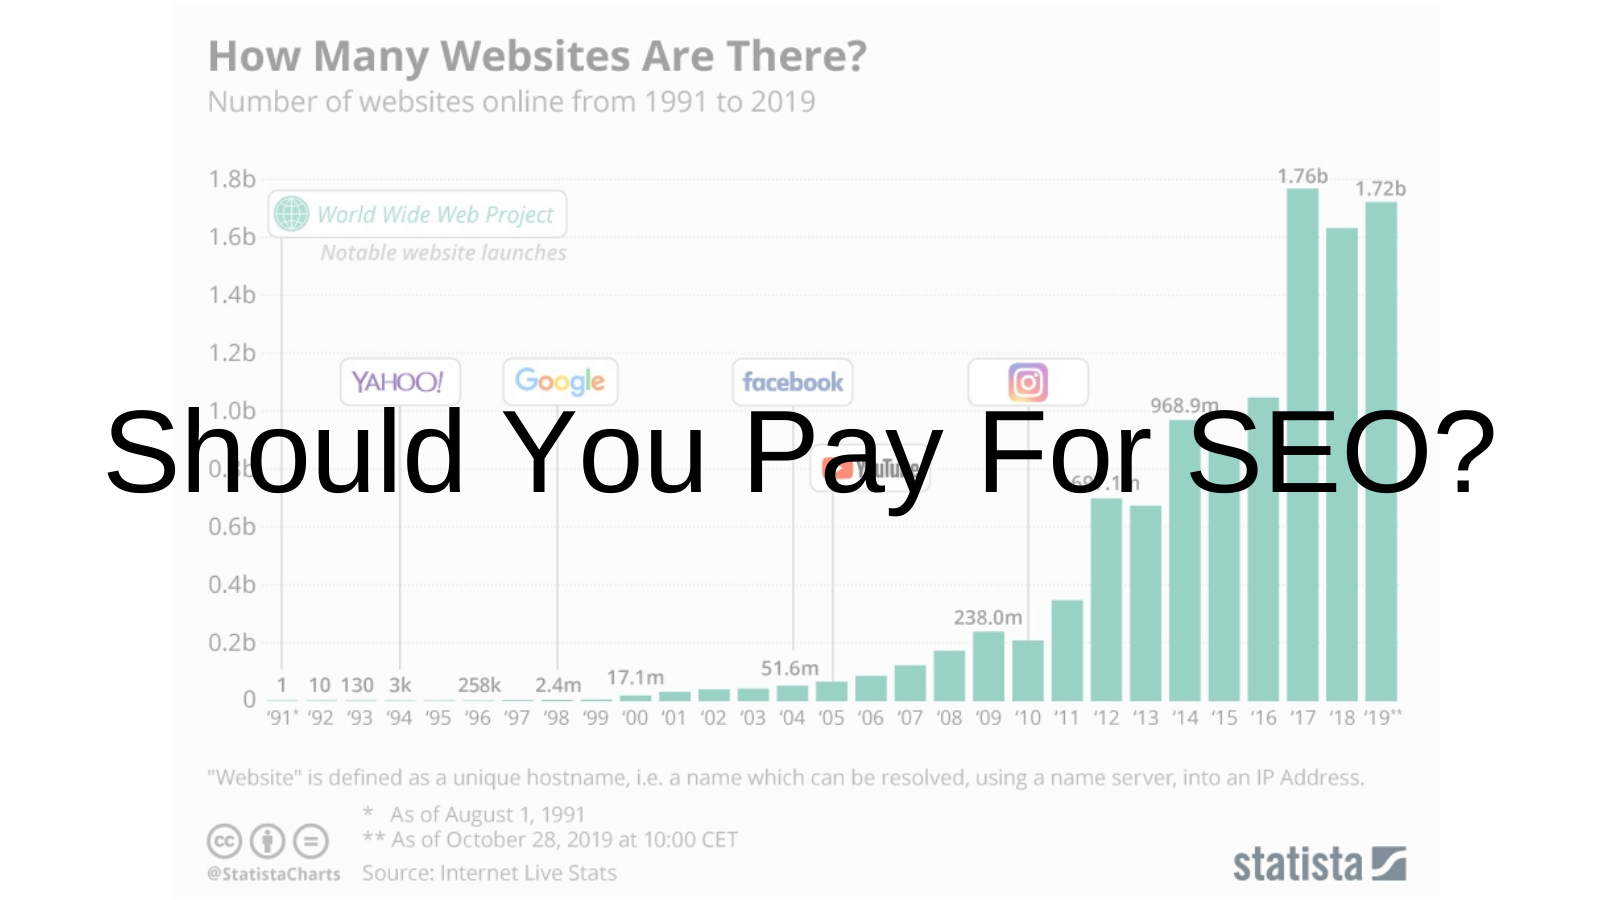 Should You Pay for SEO?